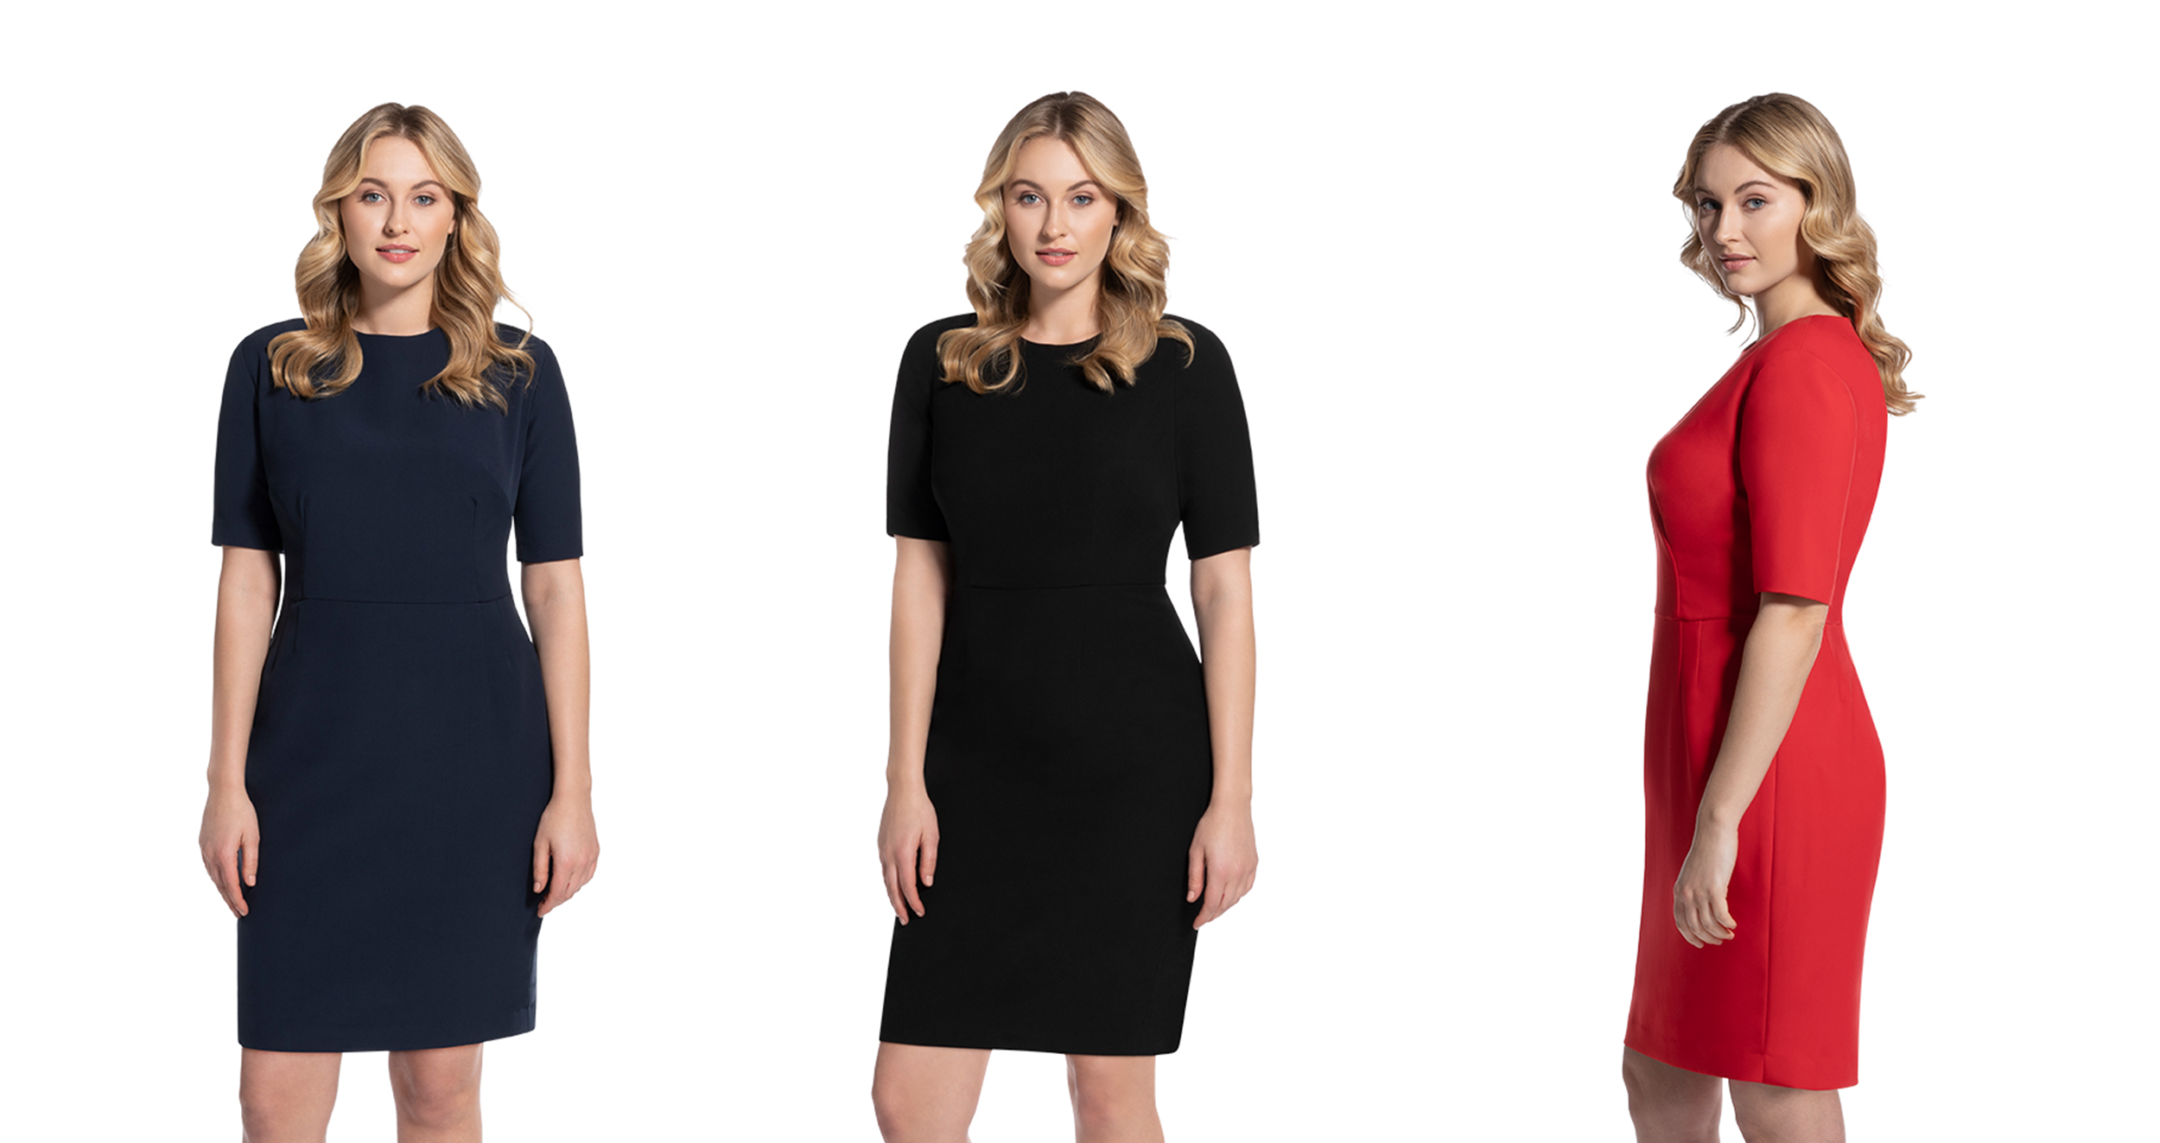 woman in 3 different dresses next to each other